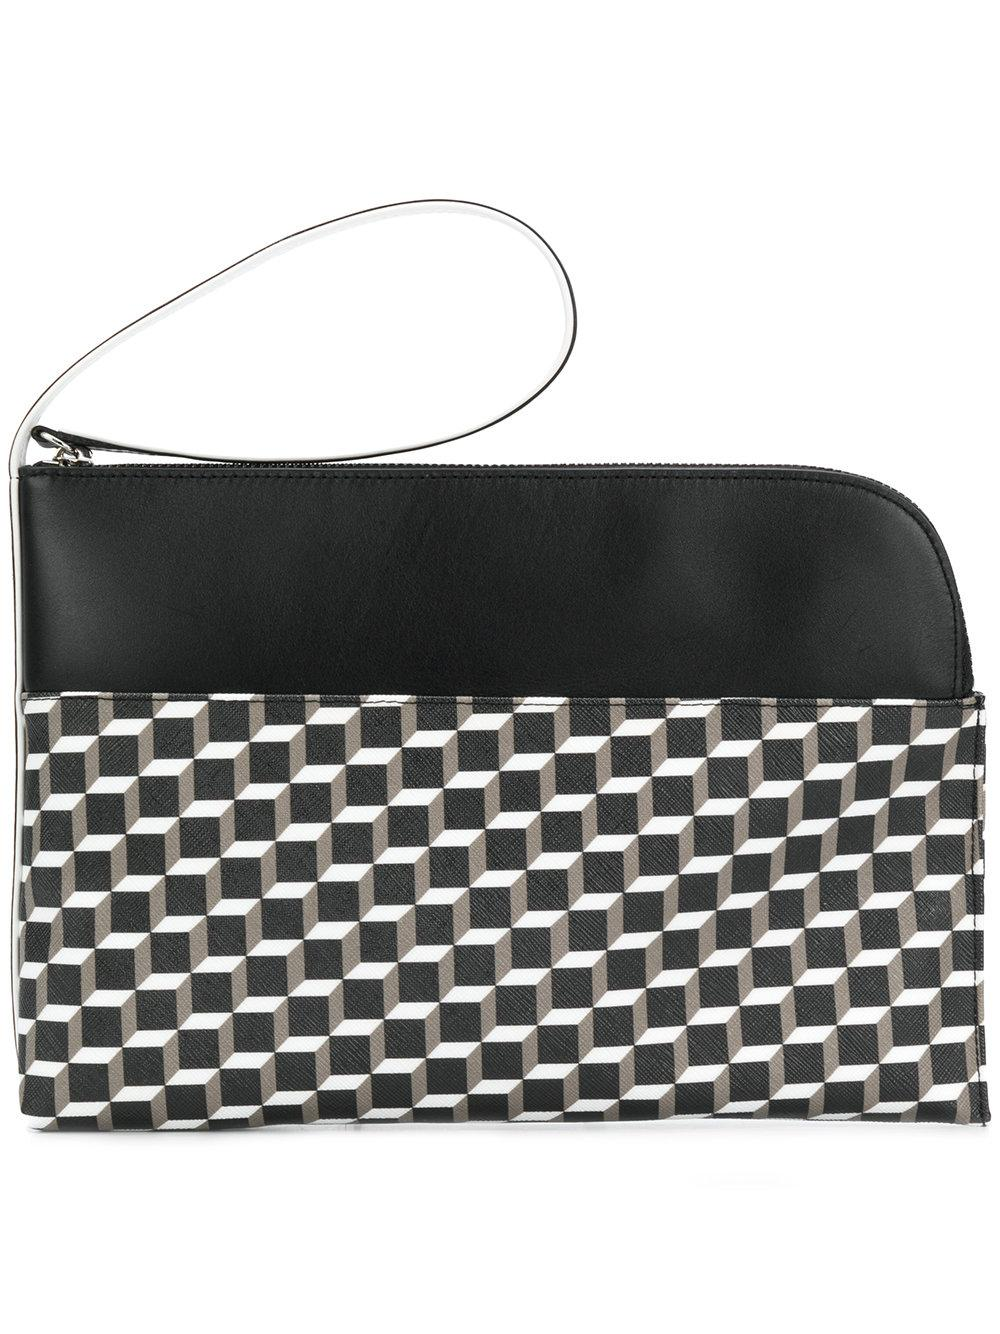 Pierre Hardy Clutch Bag In White-Black Leather